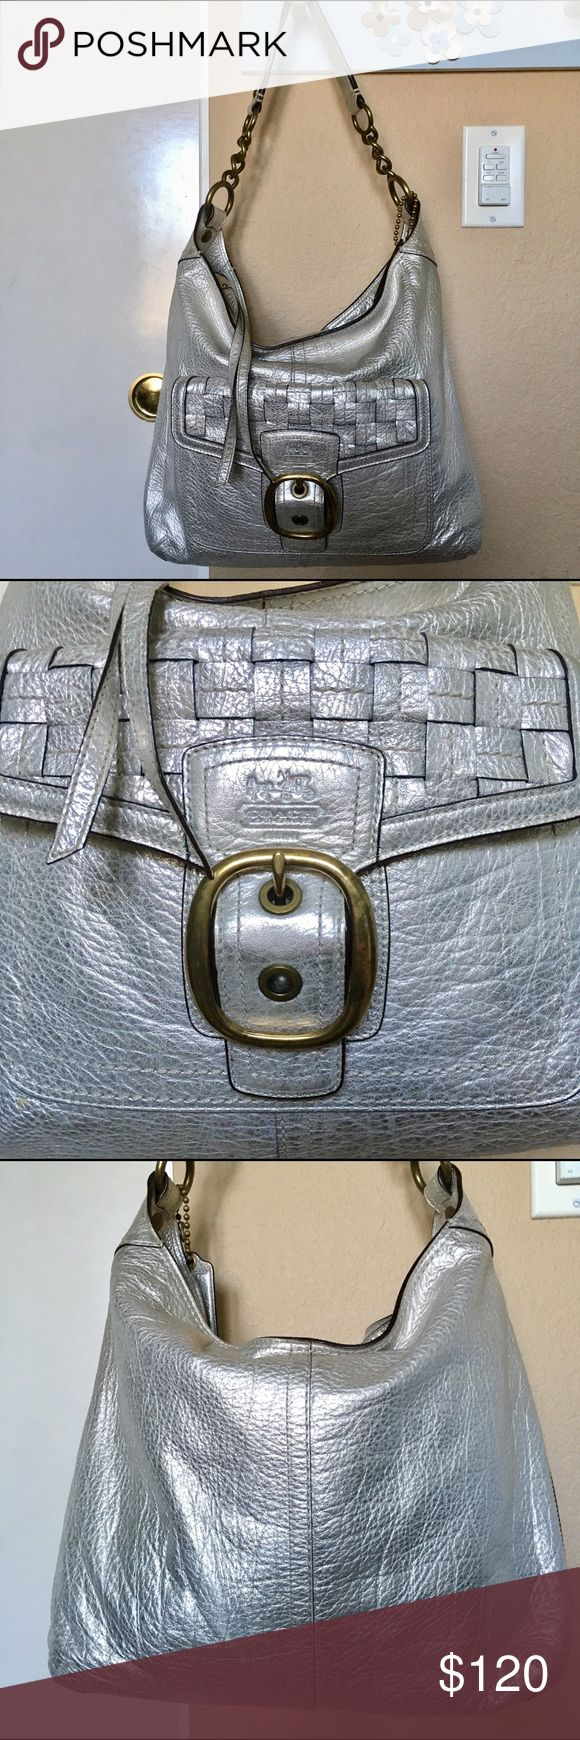 Coach Bleeker metallic woven leather hobo bag Coach Bleeker platinum metallic woven pocket leather hobo bag. Bag and strap in great condition.  Pocket on front with snap closure. Coach Bags Hobos